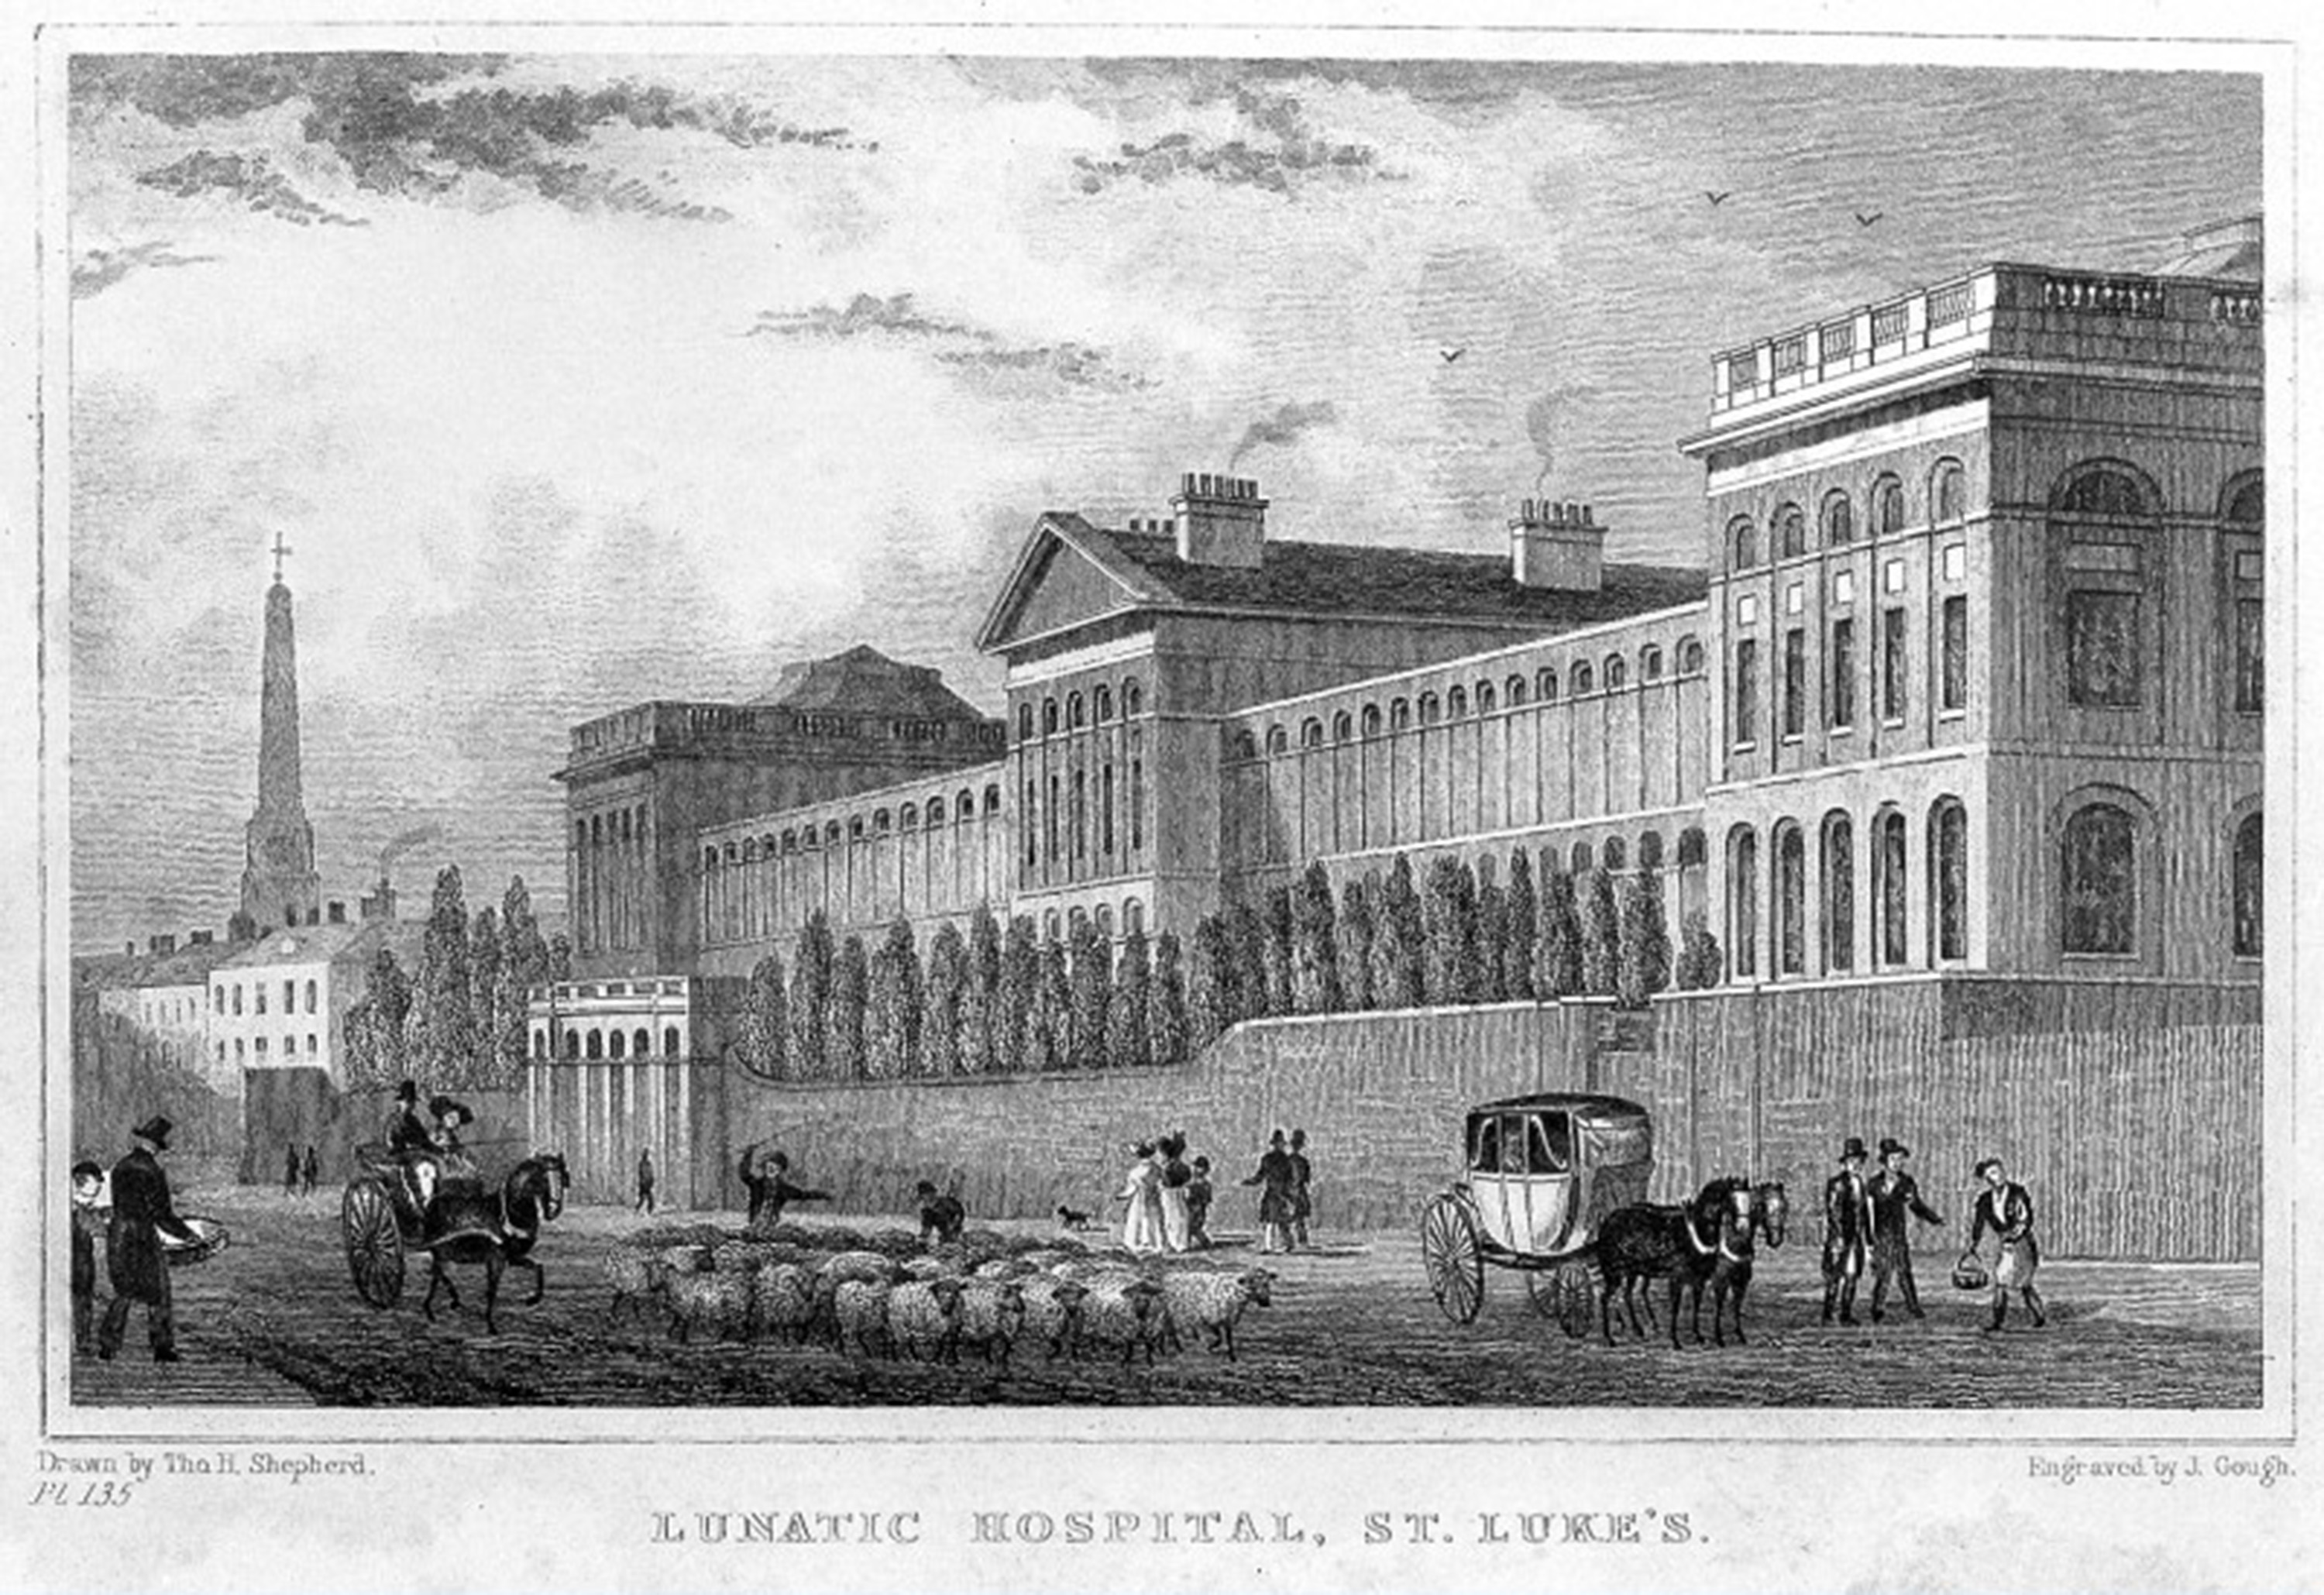 L0002973 St. Luke's Lunatic Asylum. 2nd Hospital 1787. Credit: Wellcome Library, London. Wellcome Images images@wellcome.ac.uk http://images.wellcome.ac.uk St. Luke's Lunatic Asylum. 2nd Hospital 1787. Engraving By: J. Goughafter: Tho. H. ShepherdPublished: - Copyrighted work available under Creative Commons by-nc 2.0 UK, see http://images.wellcome.ac.uk/indexplus/page/Prices.html